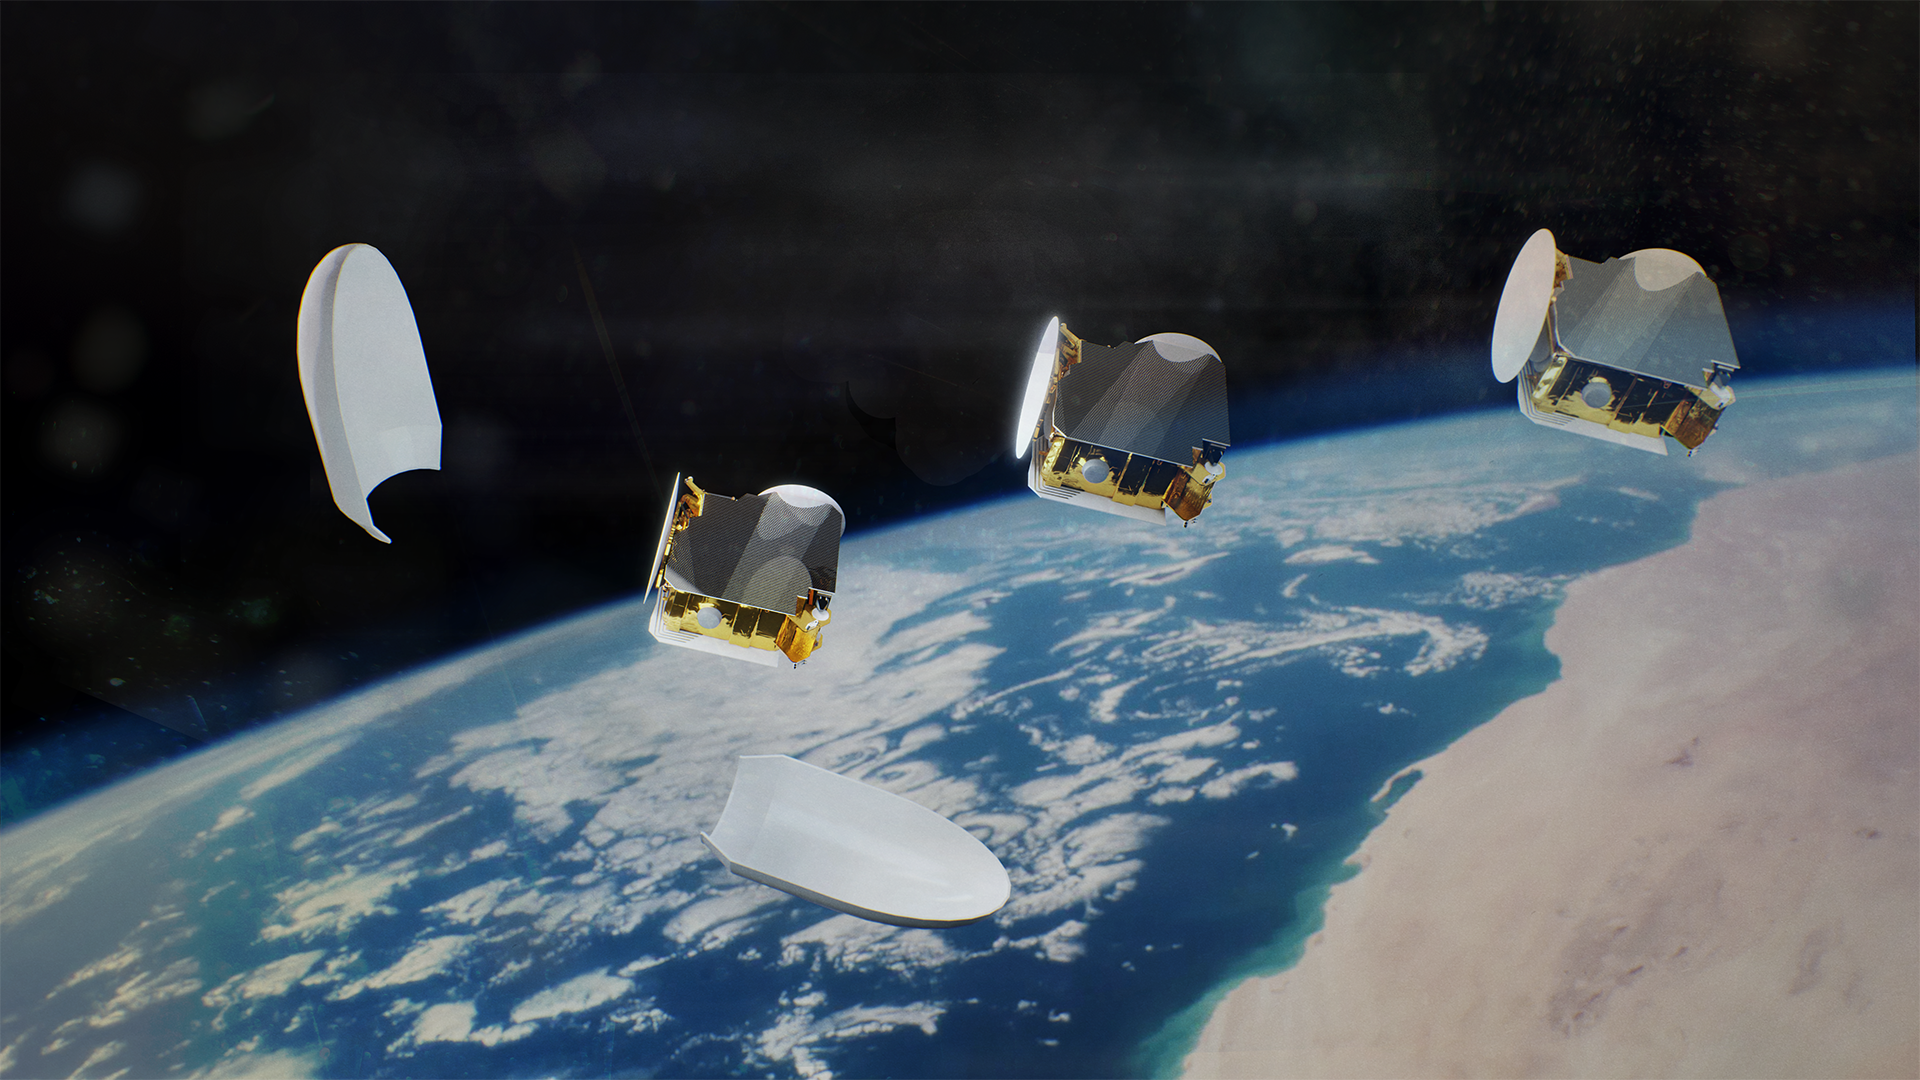 Artist's impression of three OneSat telecommunications satellites